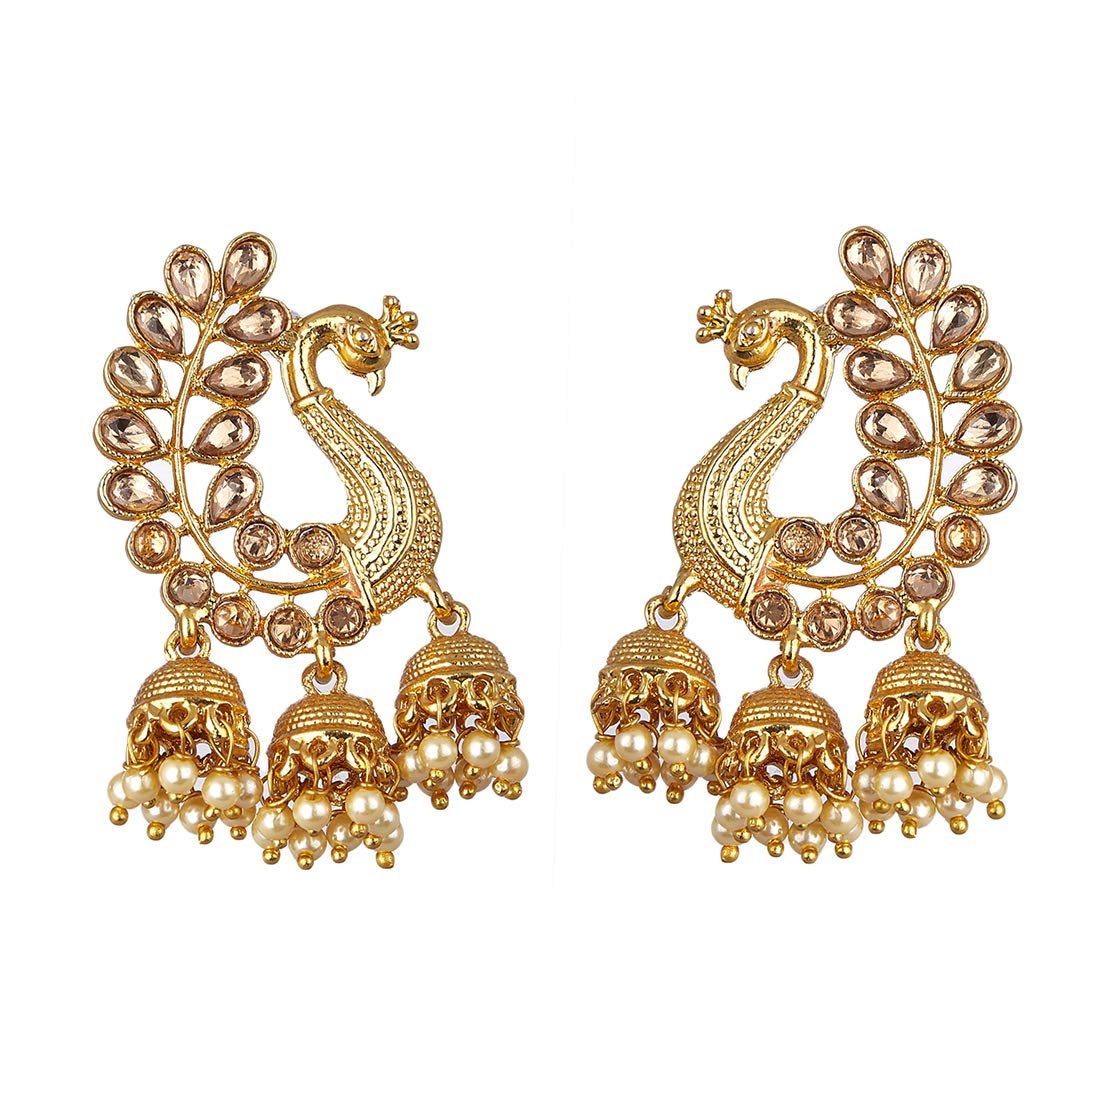 Zeneme Earrings for women stylish Jewellery Traditional